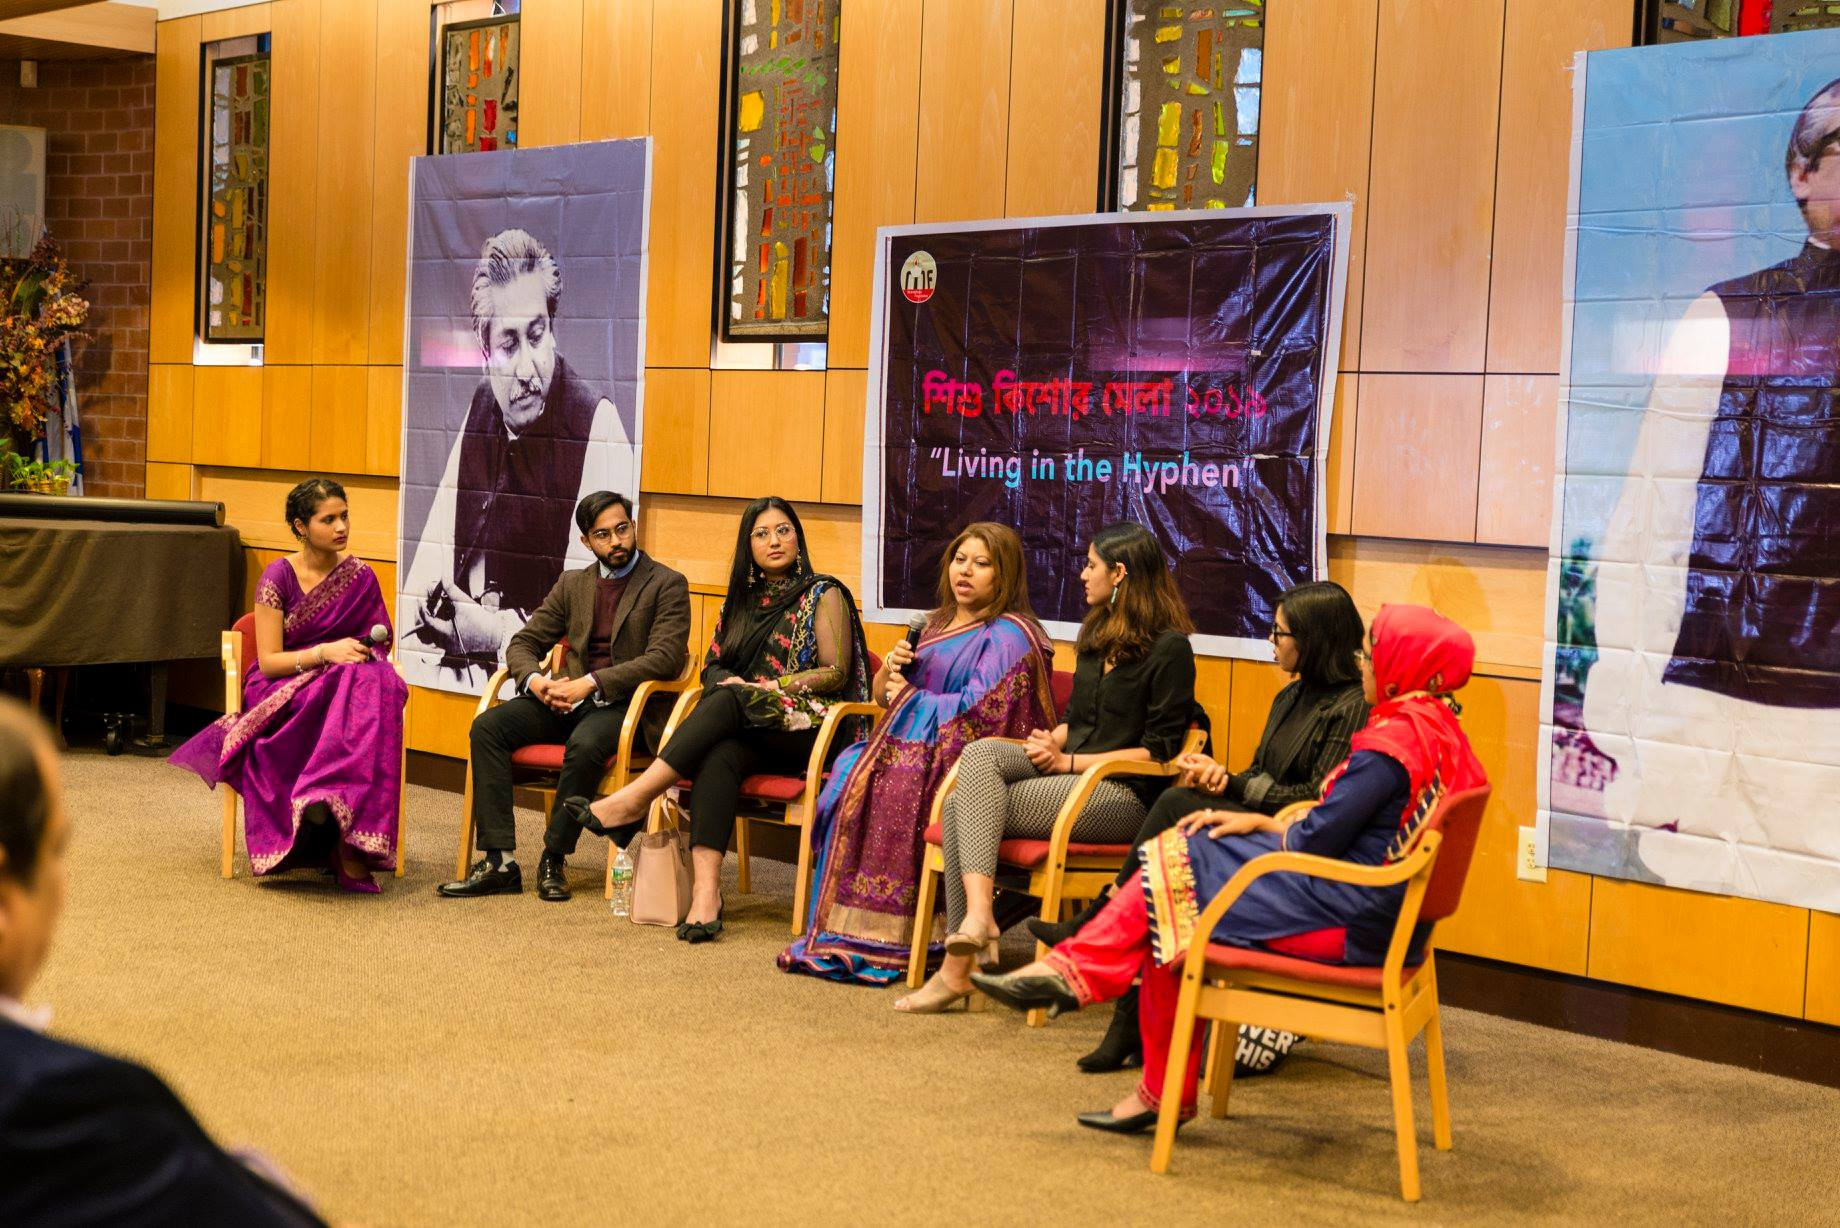 2020-ypf-panel-discussion-photo-by-wasi-ferdous-54437010